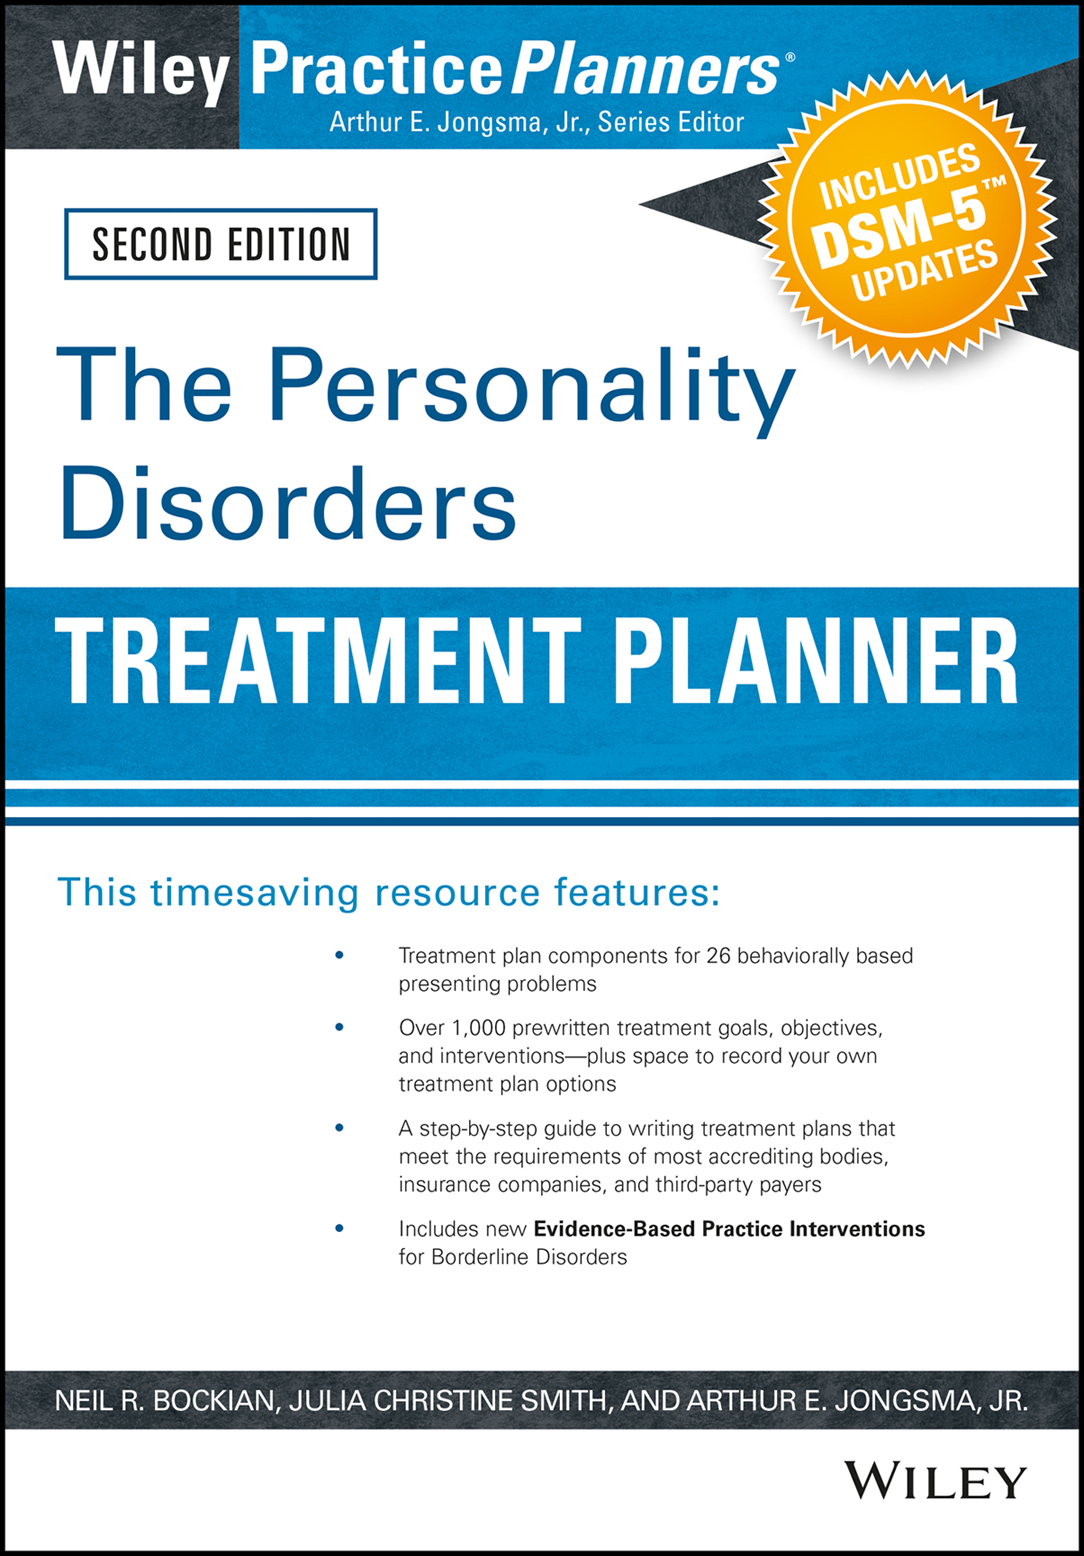 sample treatment plan for dependent personality disorder